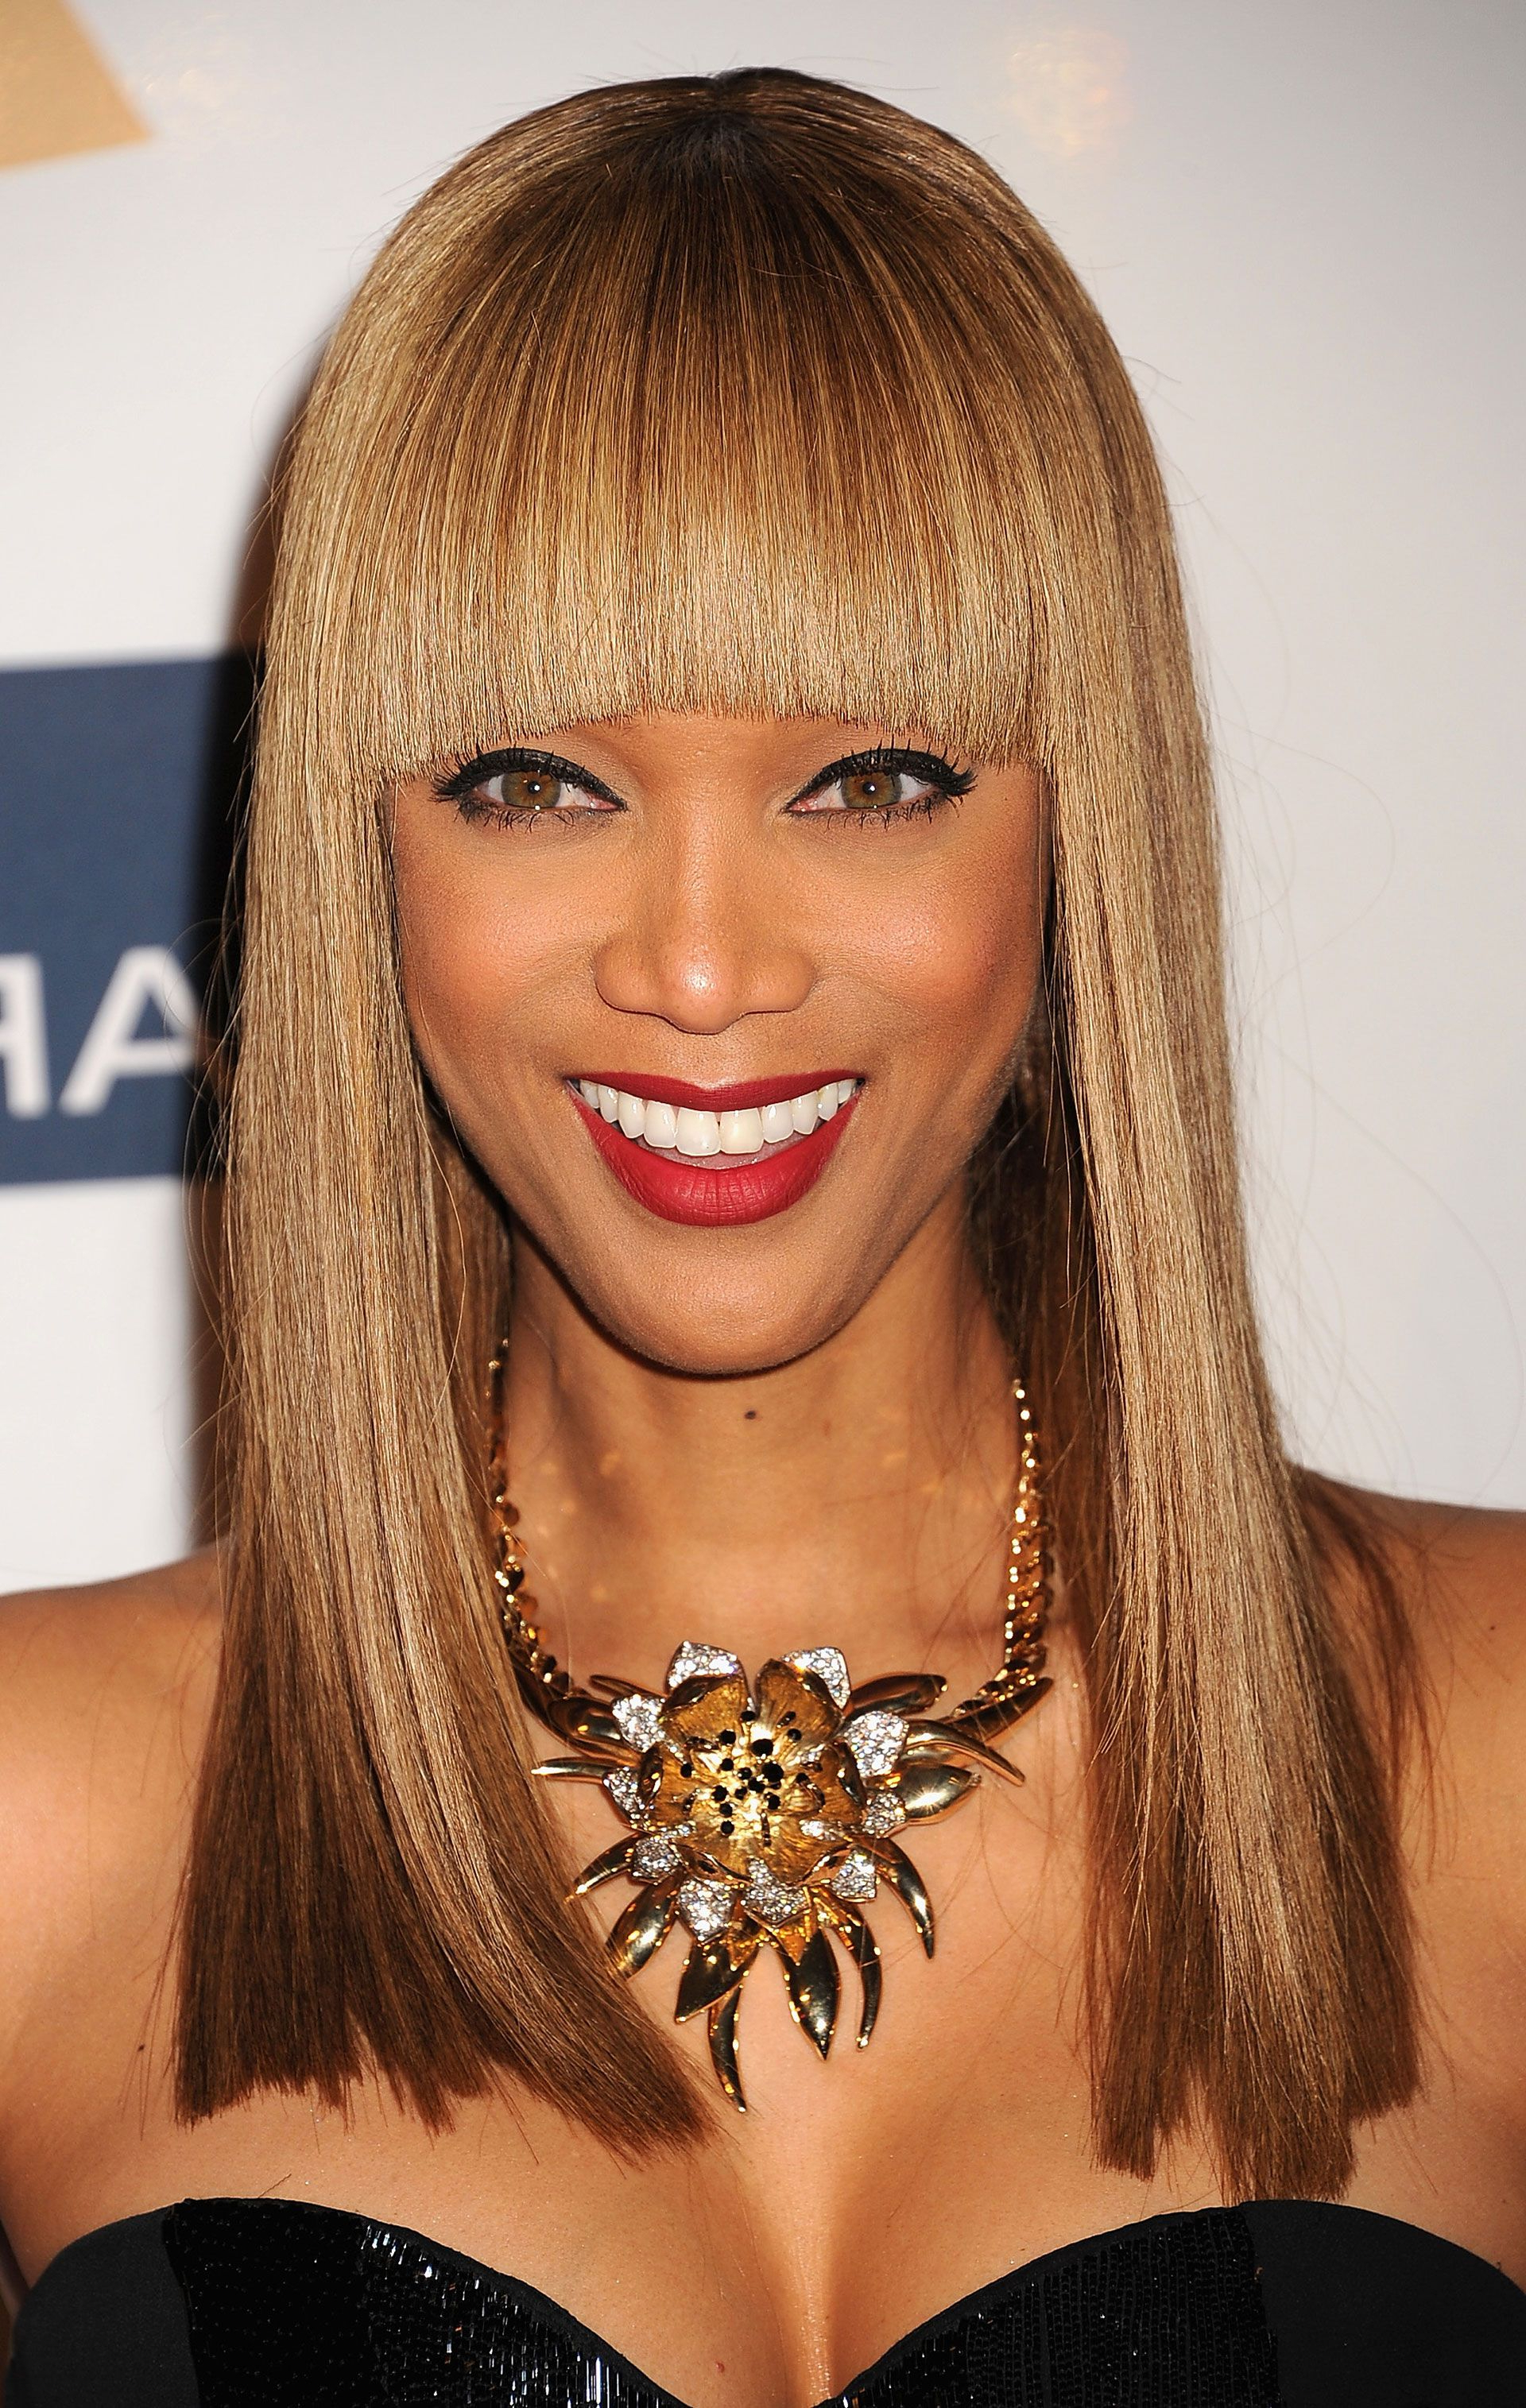 18 Easy Medium Length Hairstyles For Women 2017 – Cute Medium In Well Known Tyra Banks Medium Hairstyles (View 1 of 20)